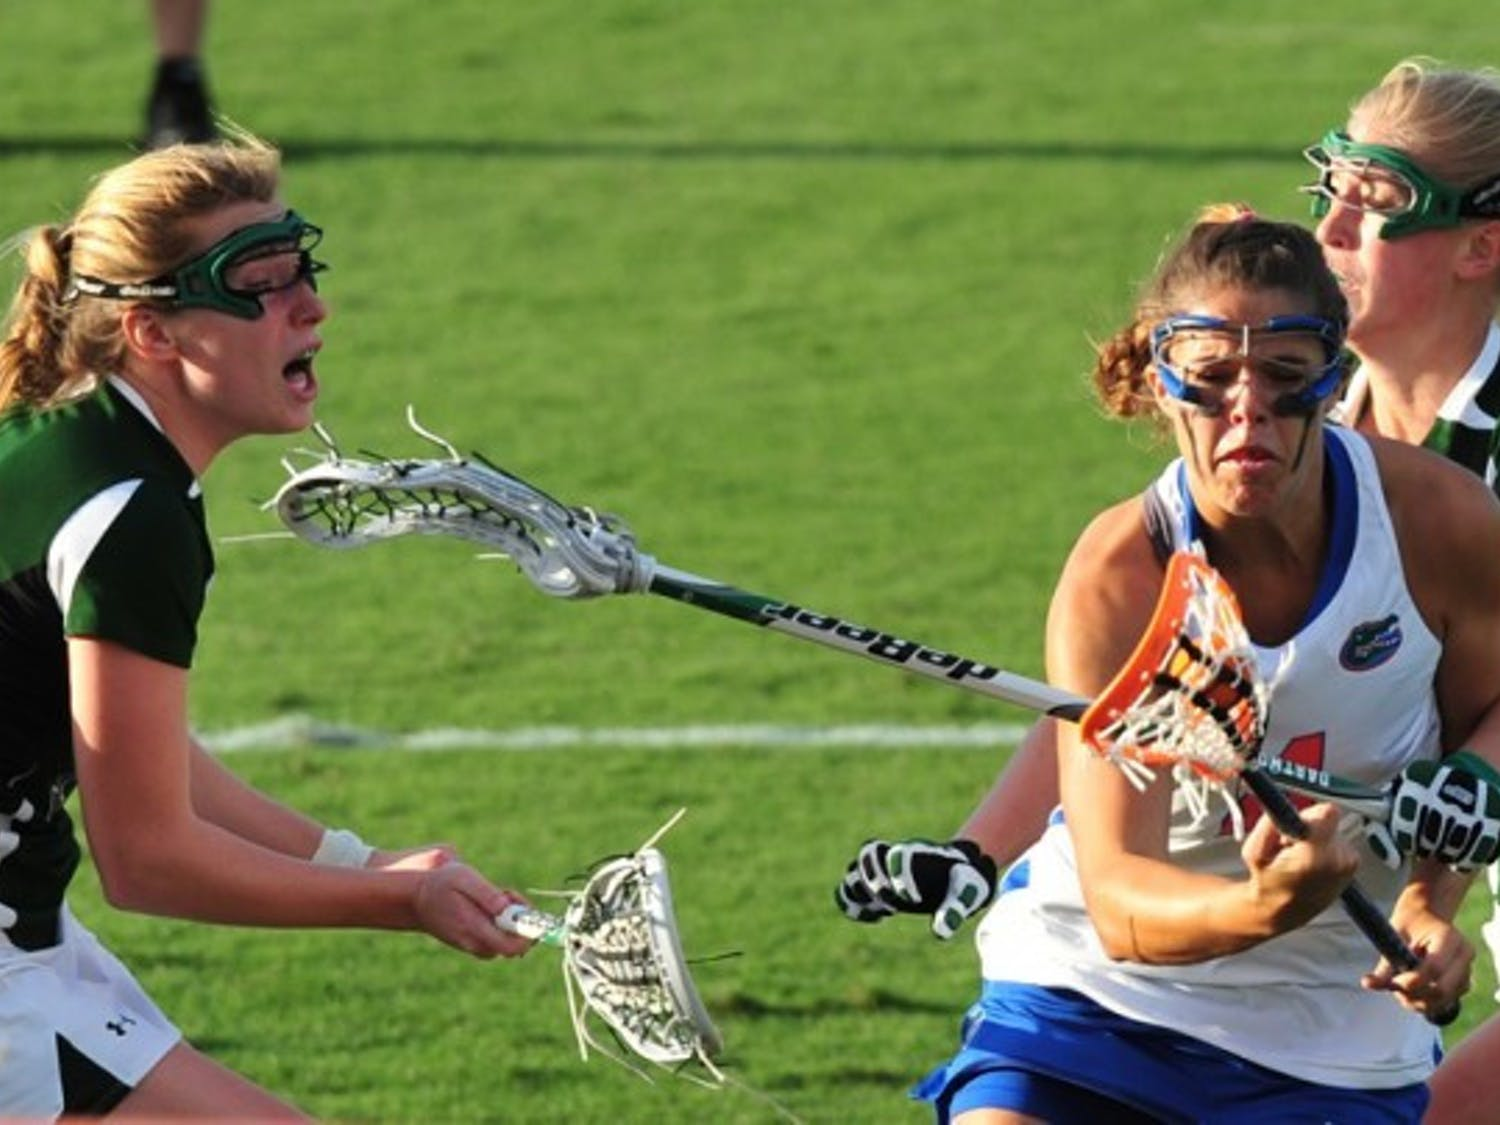 Kitty Cullen (4) drives toward the goal against Dartmouth on March 20. Cullen and Emily Dohony have both suffered head injuries this season but said they do not want helmets to be required.